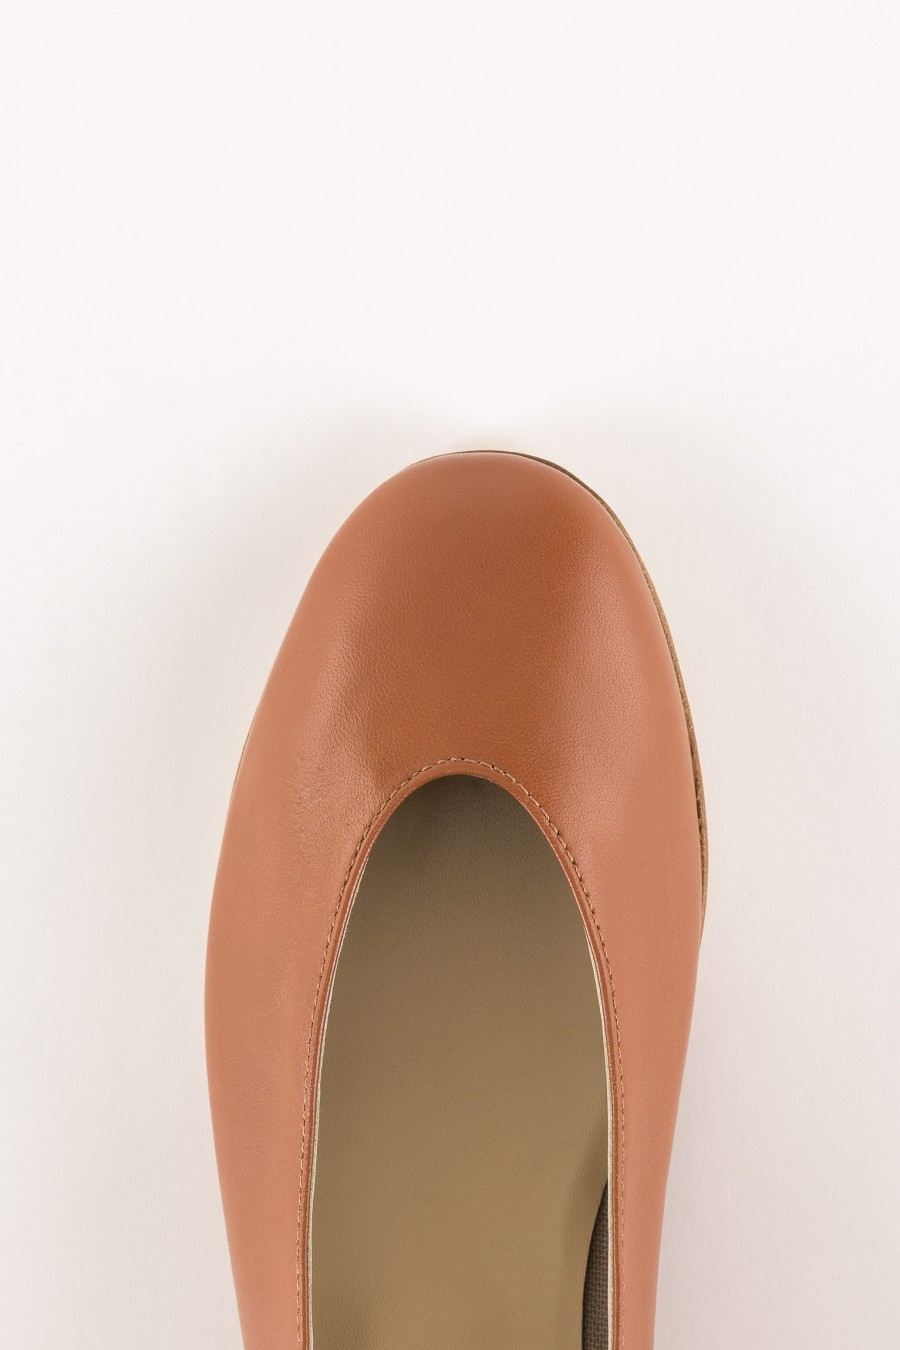 brown rounded shoes